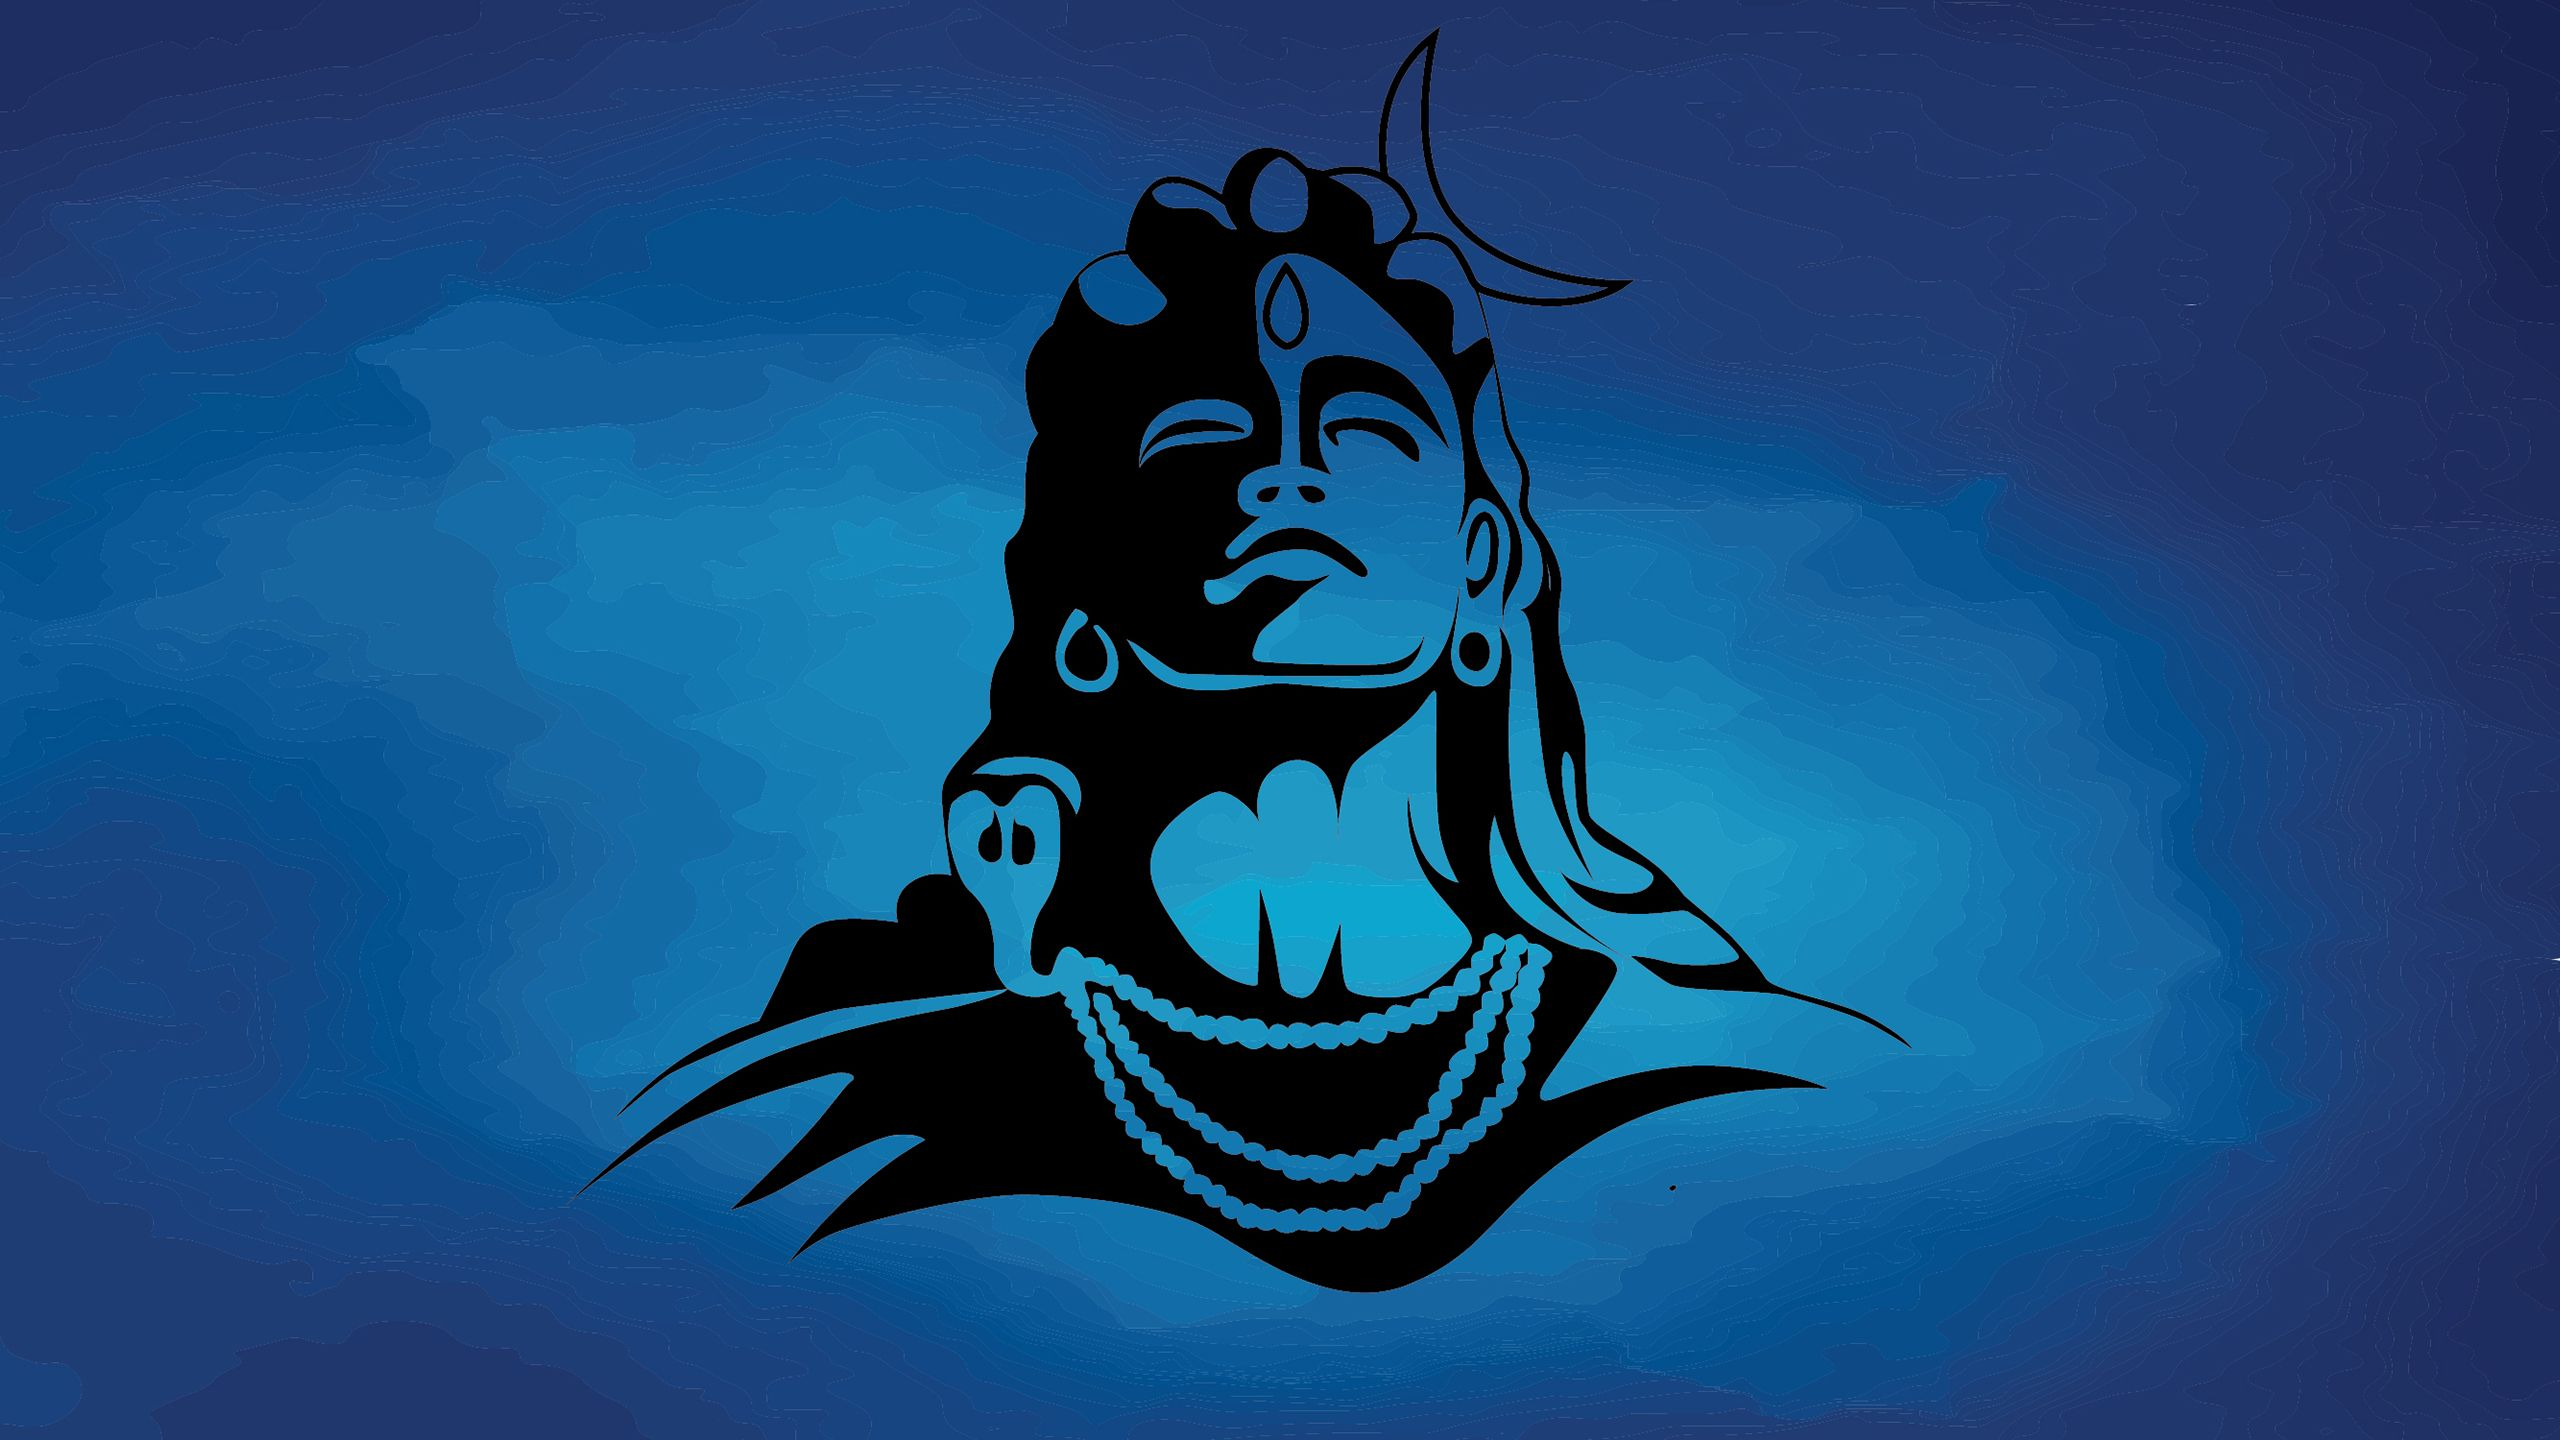 Shiva Wallpapers - Top Free Shiva Backgrounds - WallpaperAccess